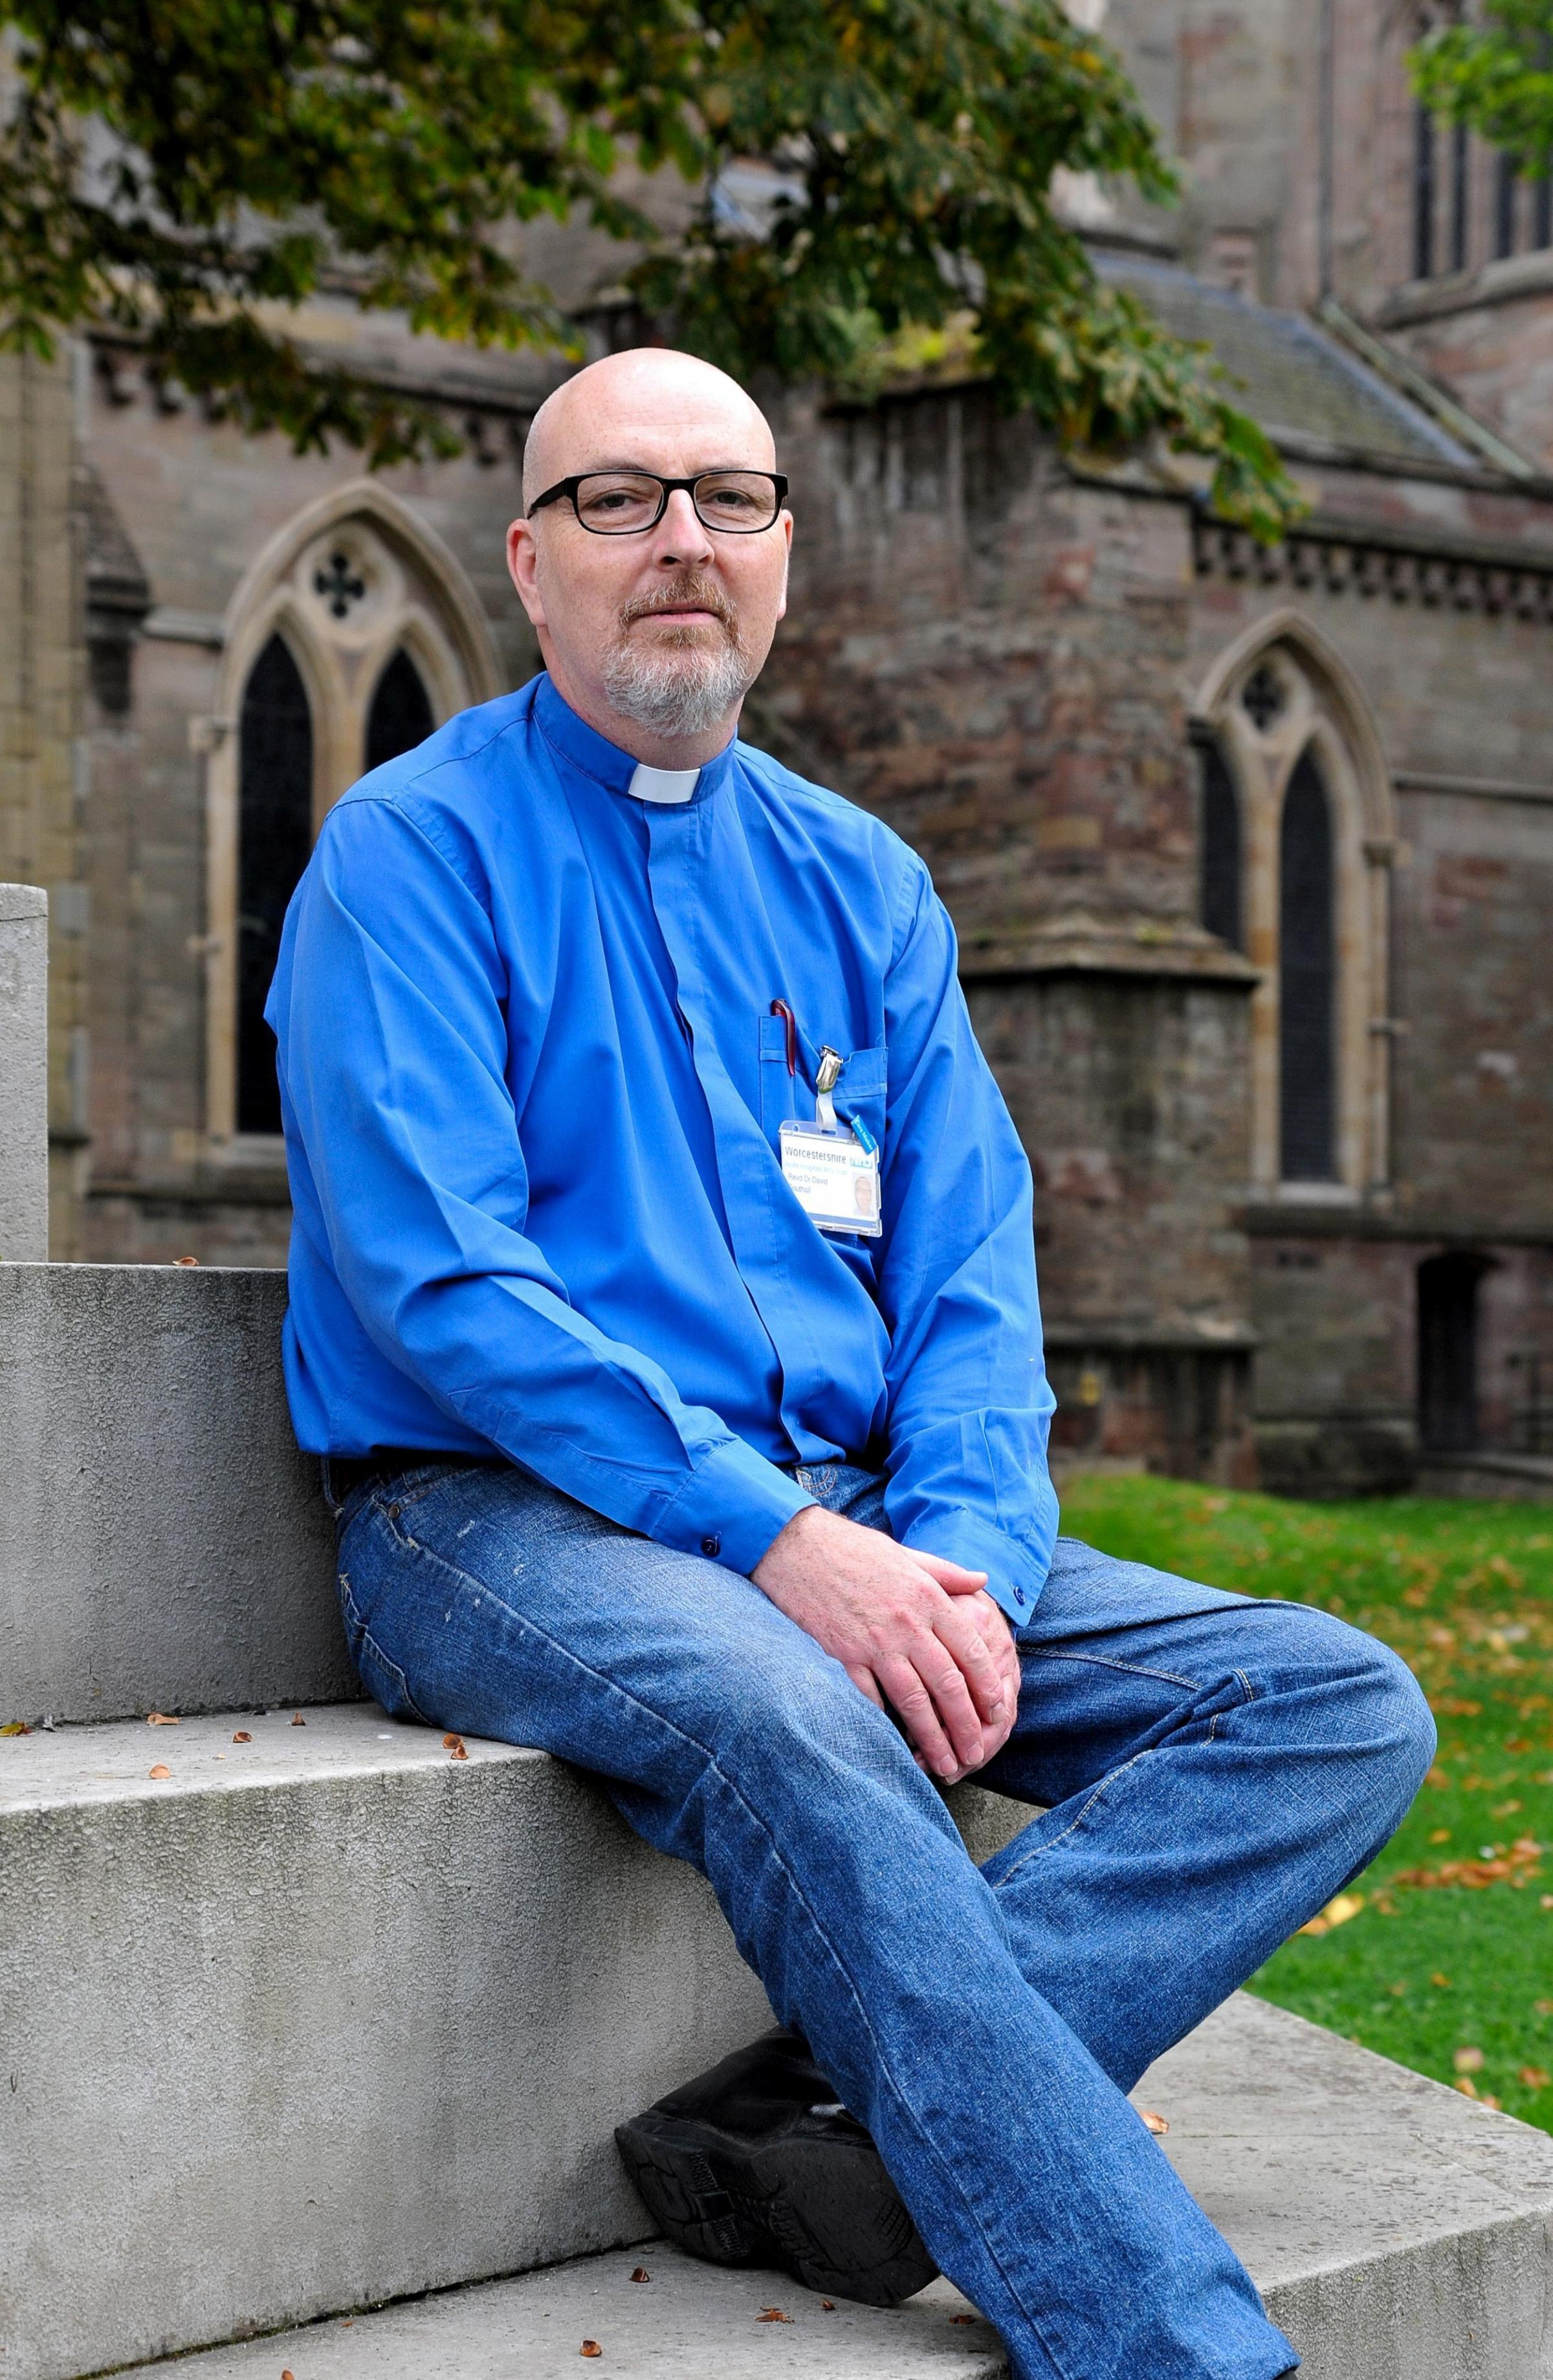 CHAPLAIN'S BLOG: You can't manage another person's grief, so don't try